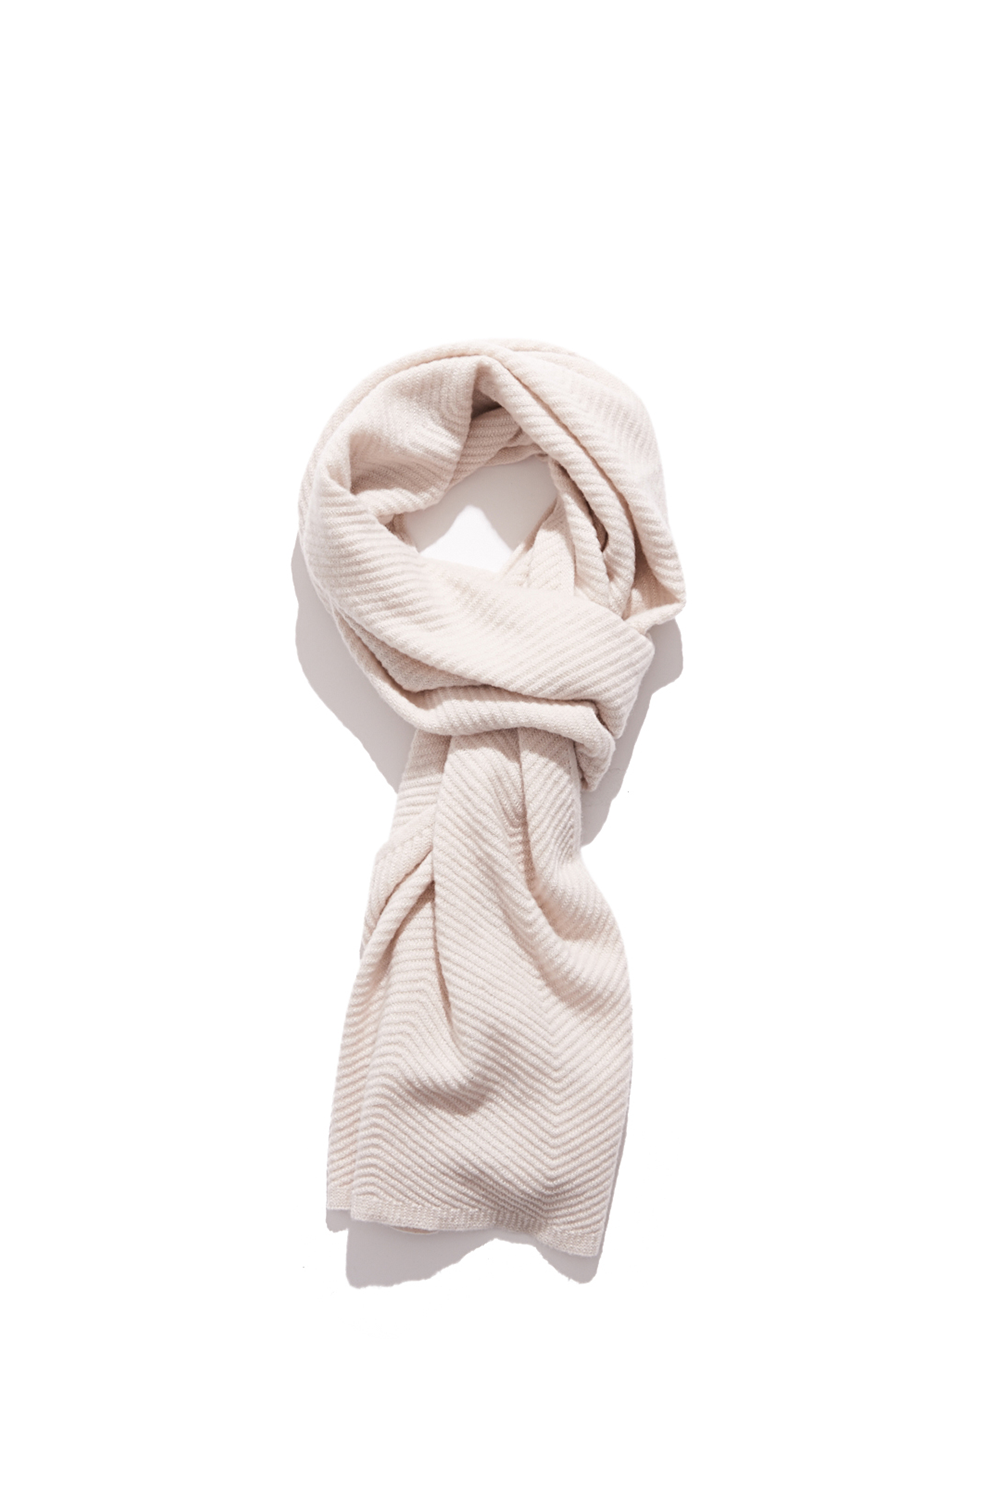 Premium pure cashmere100 whole-garment knitting shawl and scarf-Cream ivory